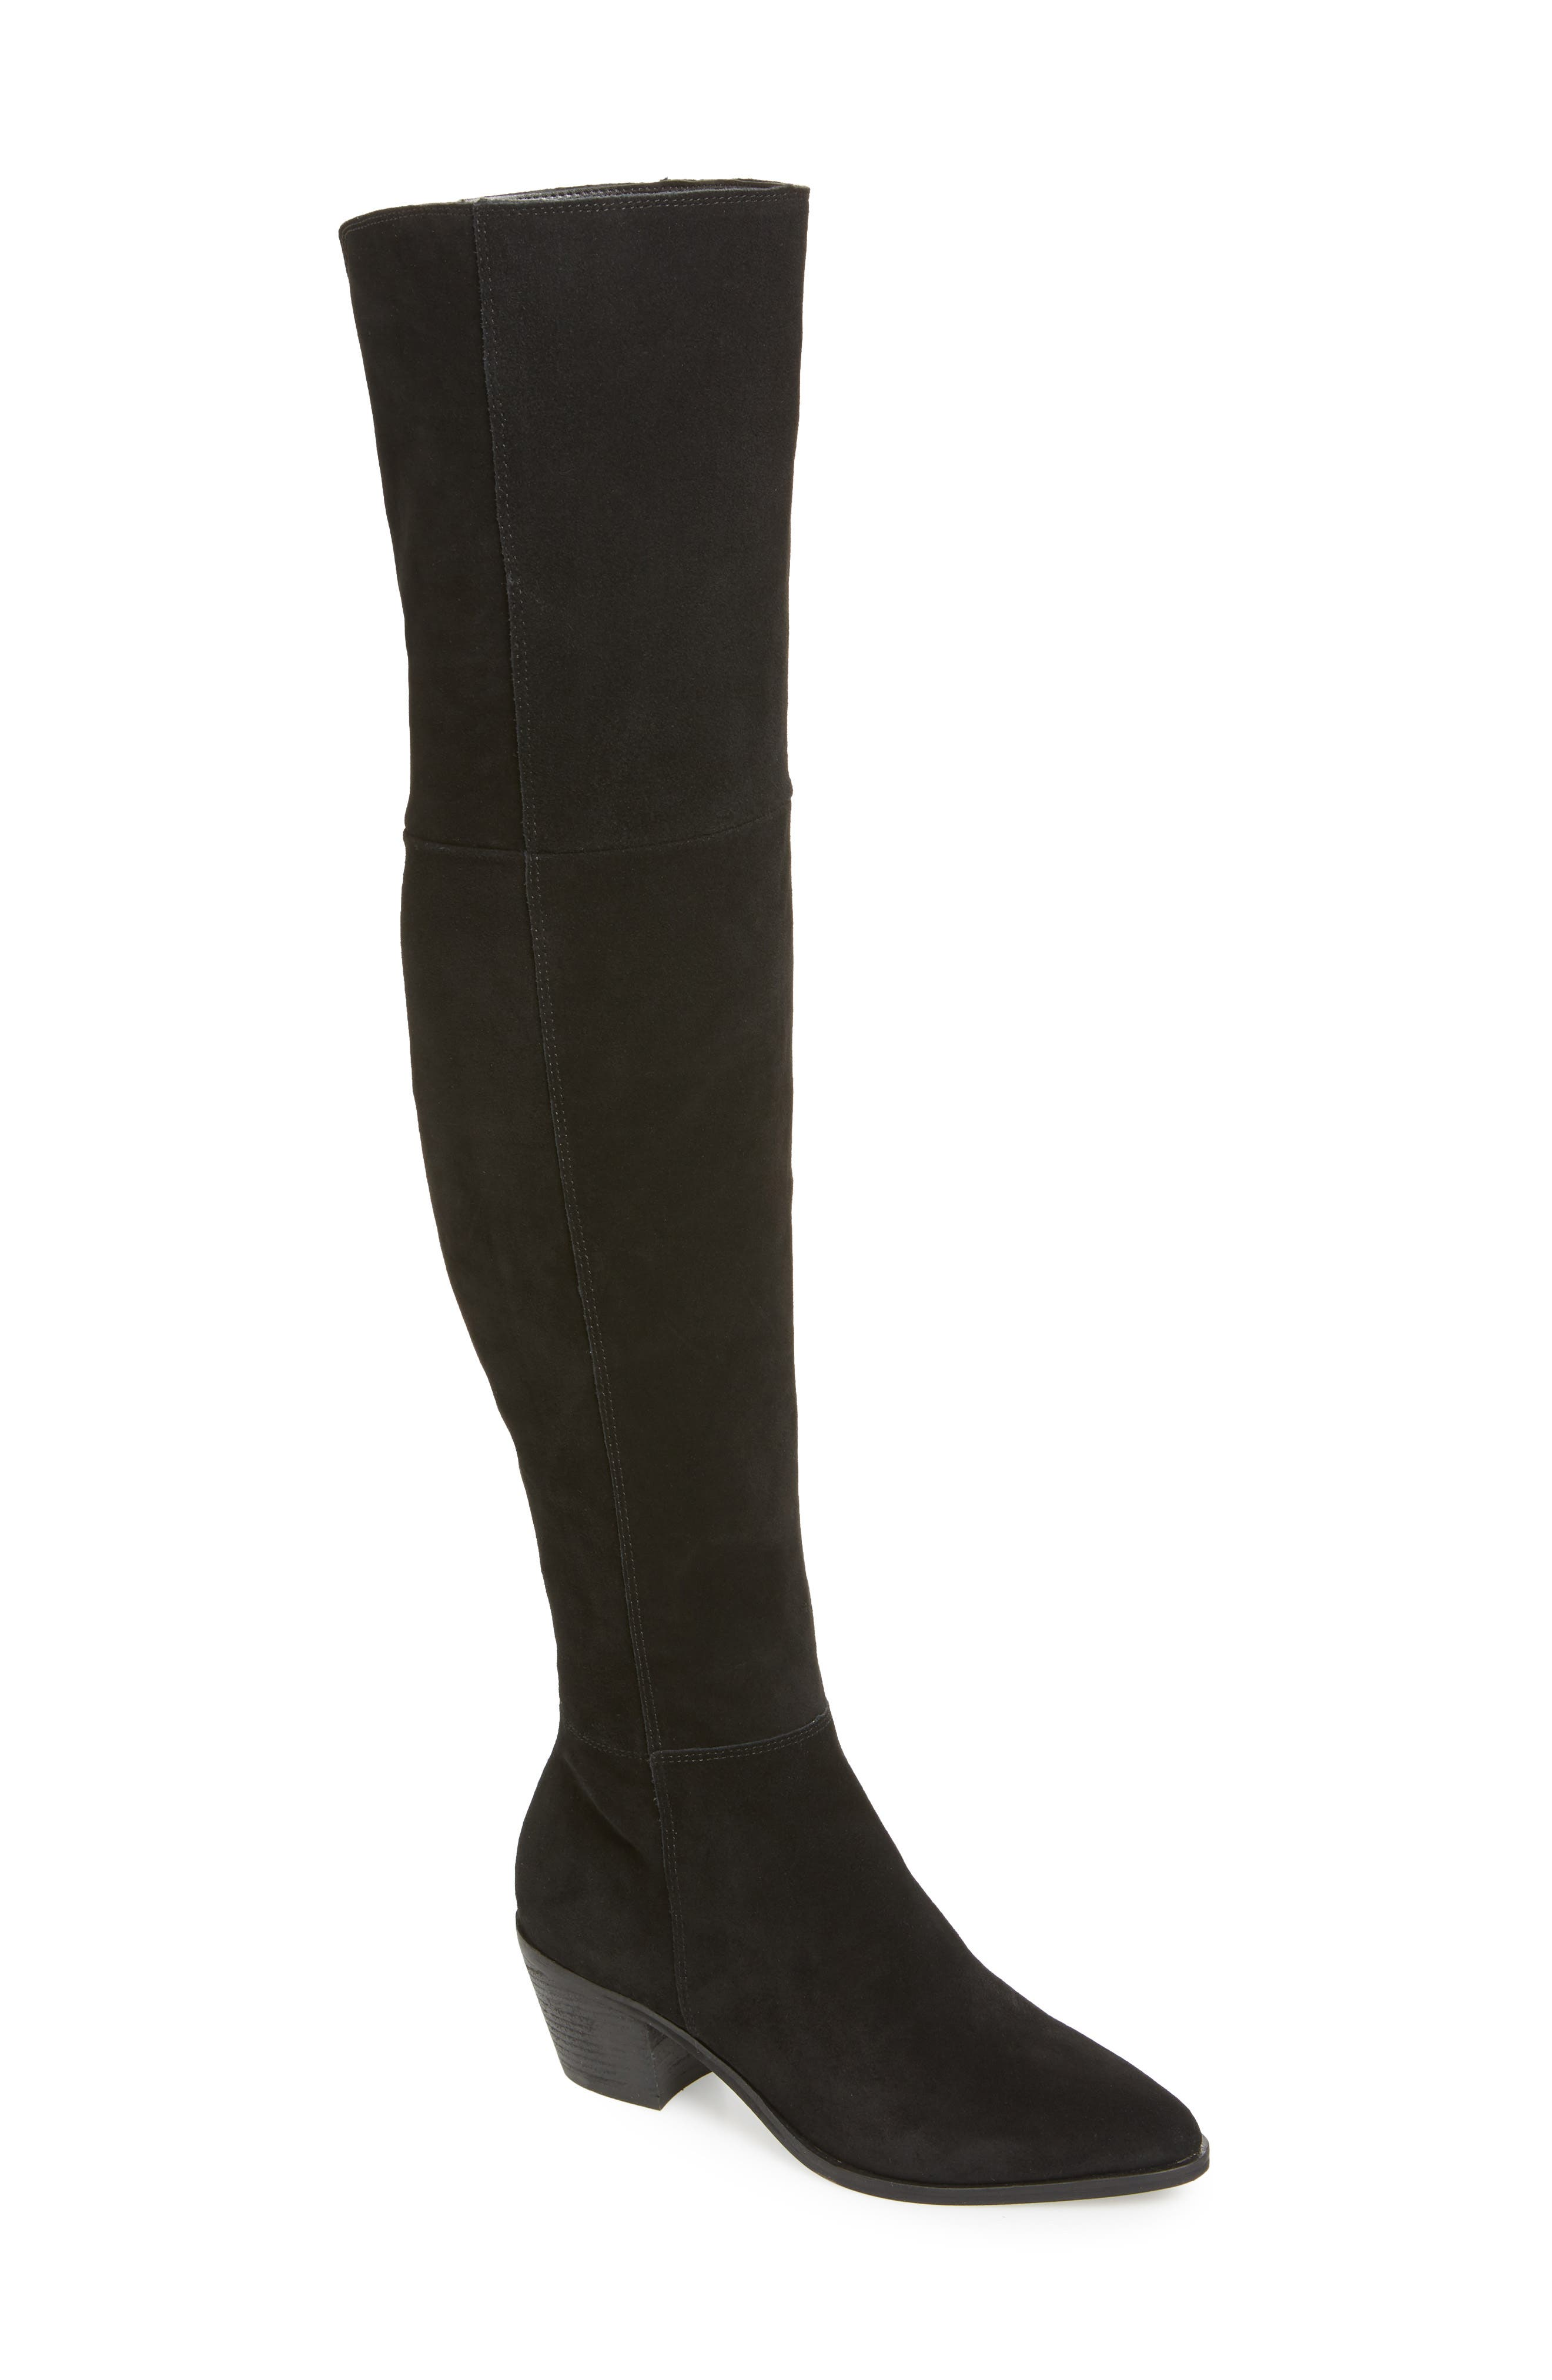 Lucca Pieced Over the Knee Boot,                             Main thumbnail 1, color,                             006